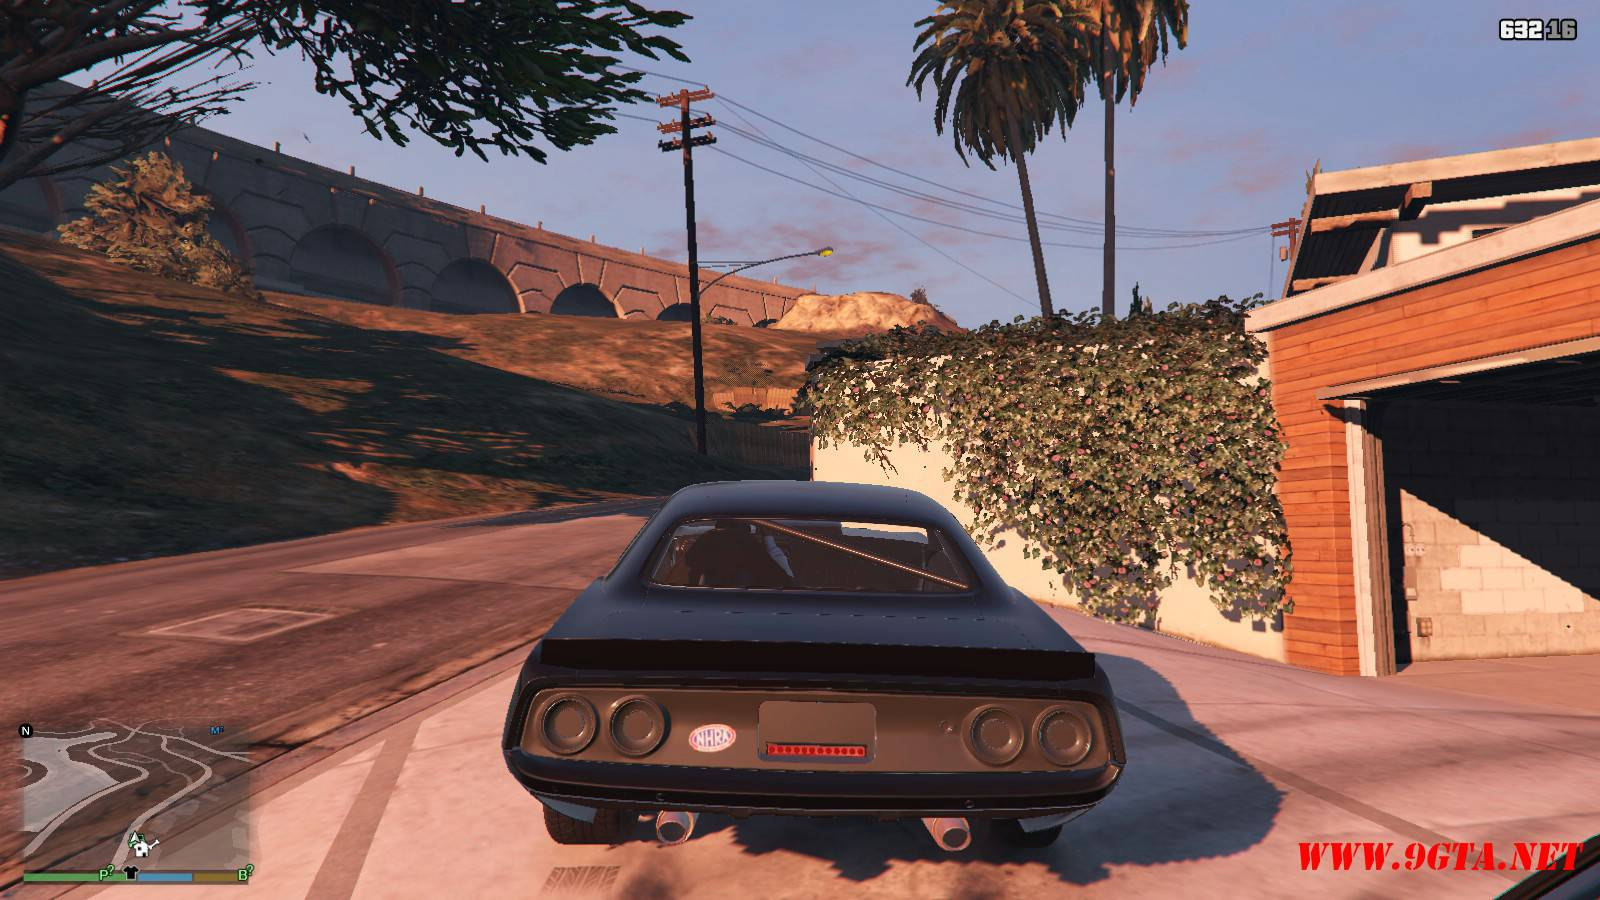 Plymouth Kuda Beck Customs Mod For GTA5 (5)